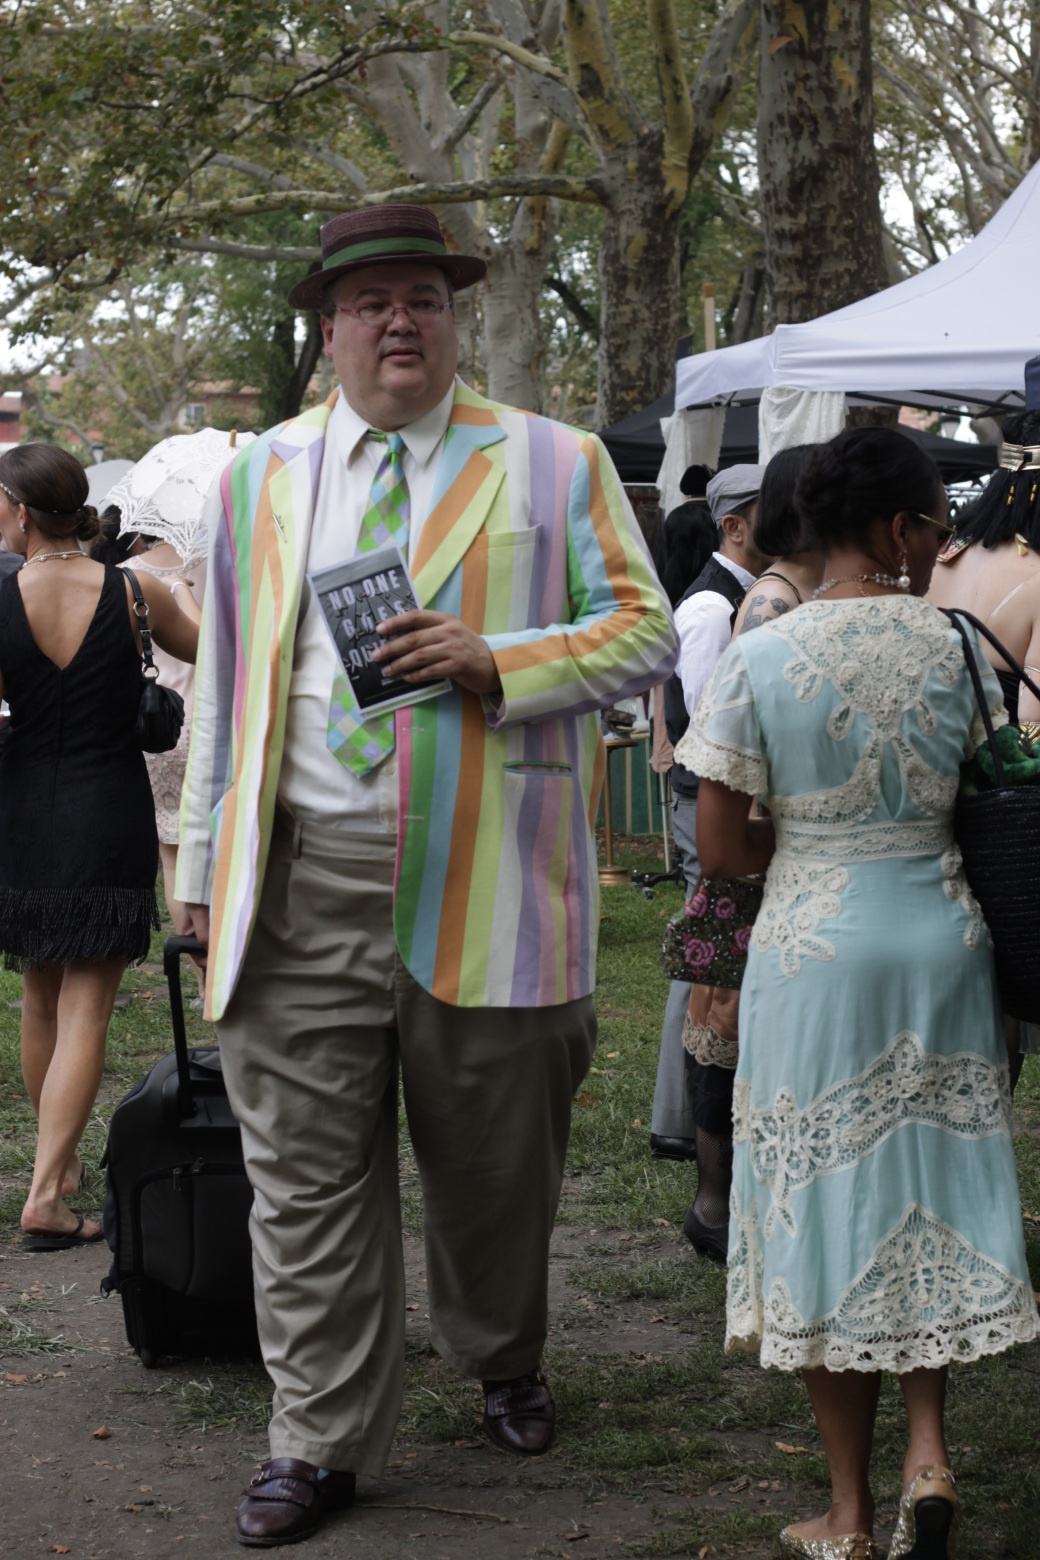 new york city governors island jazz age lawn party august 17 2014 24